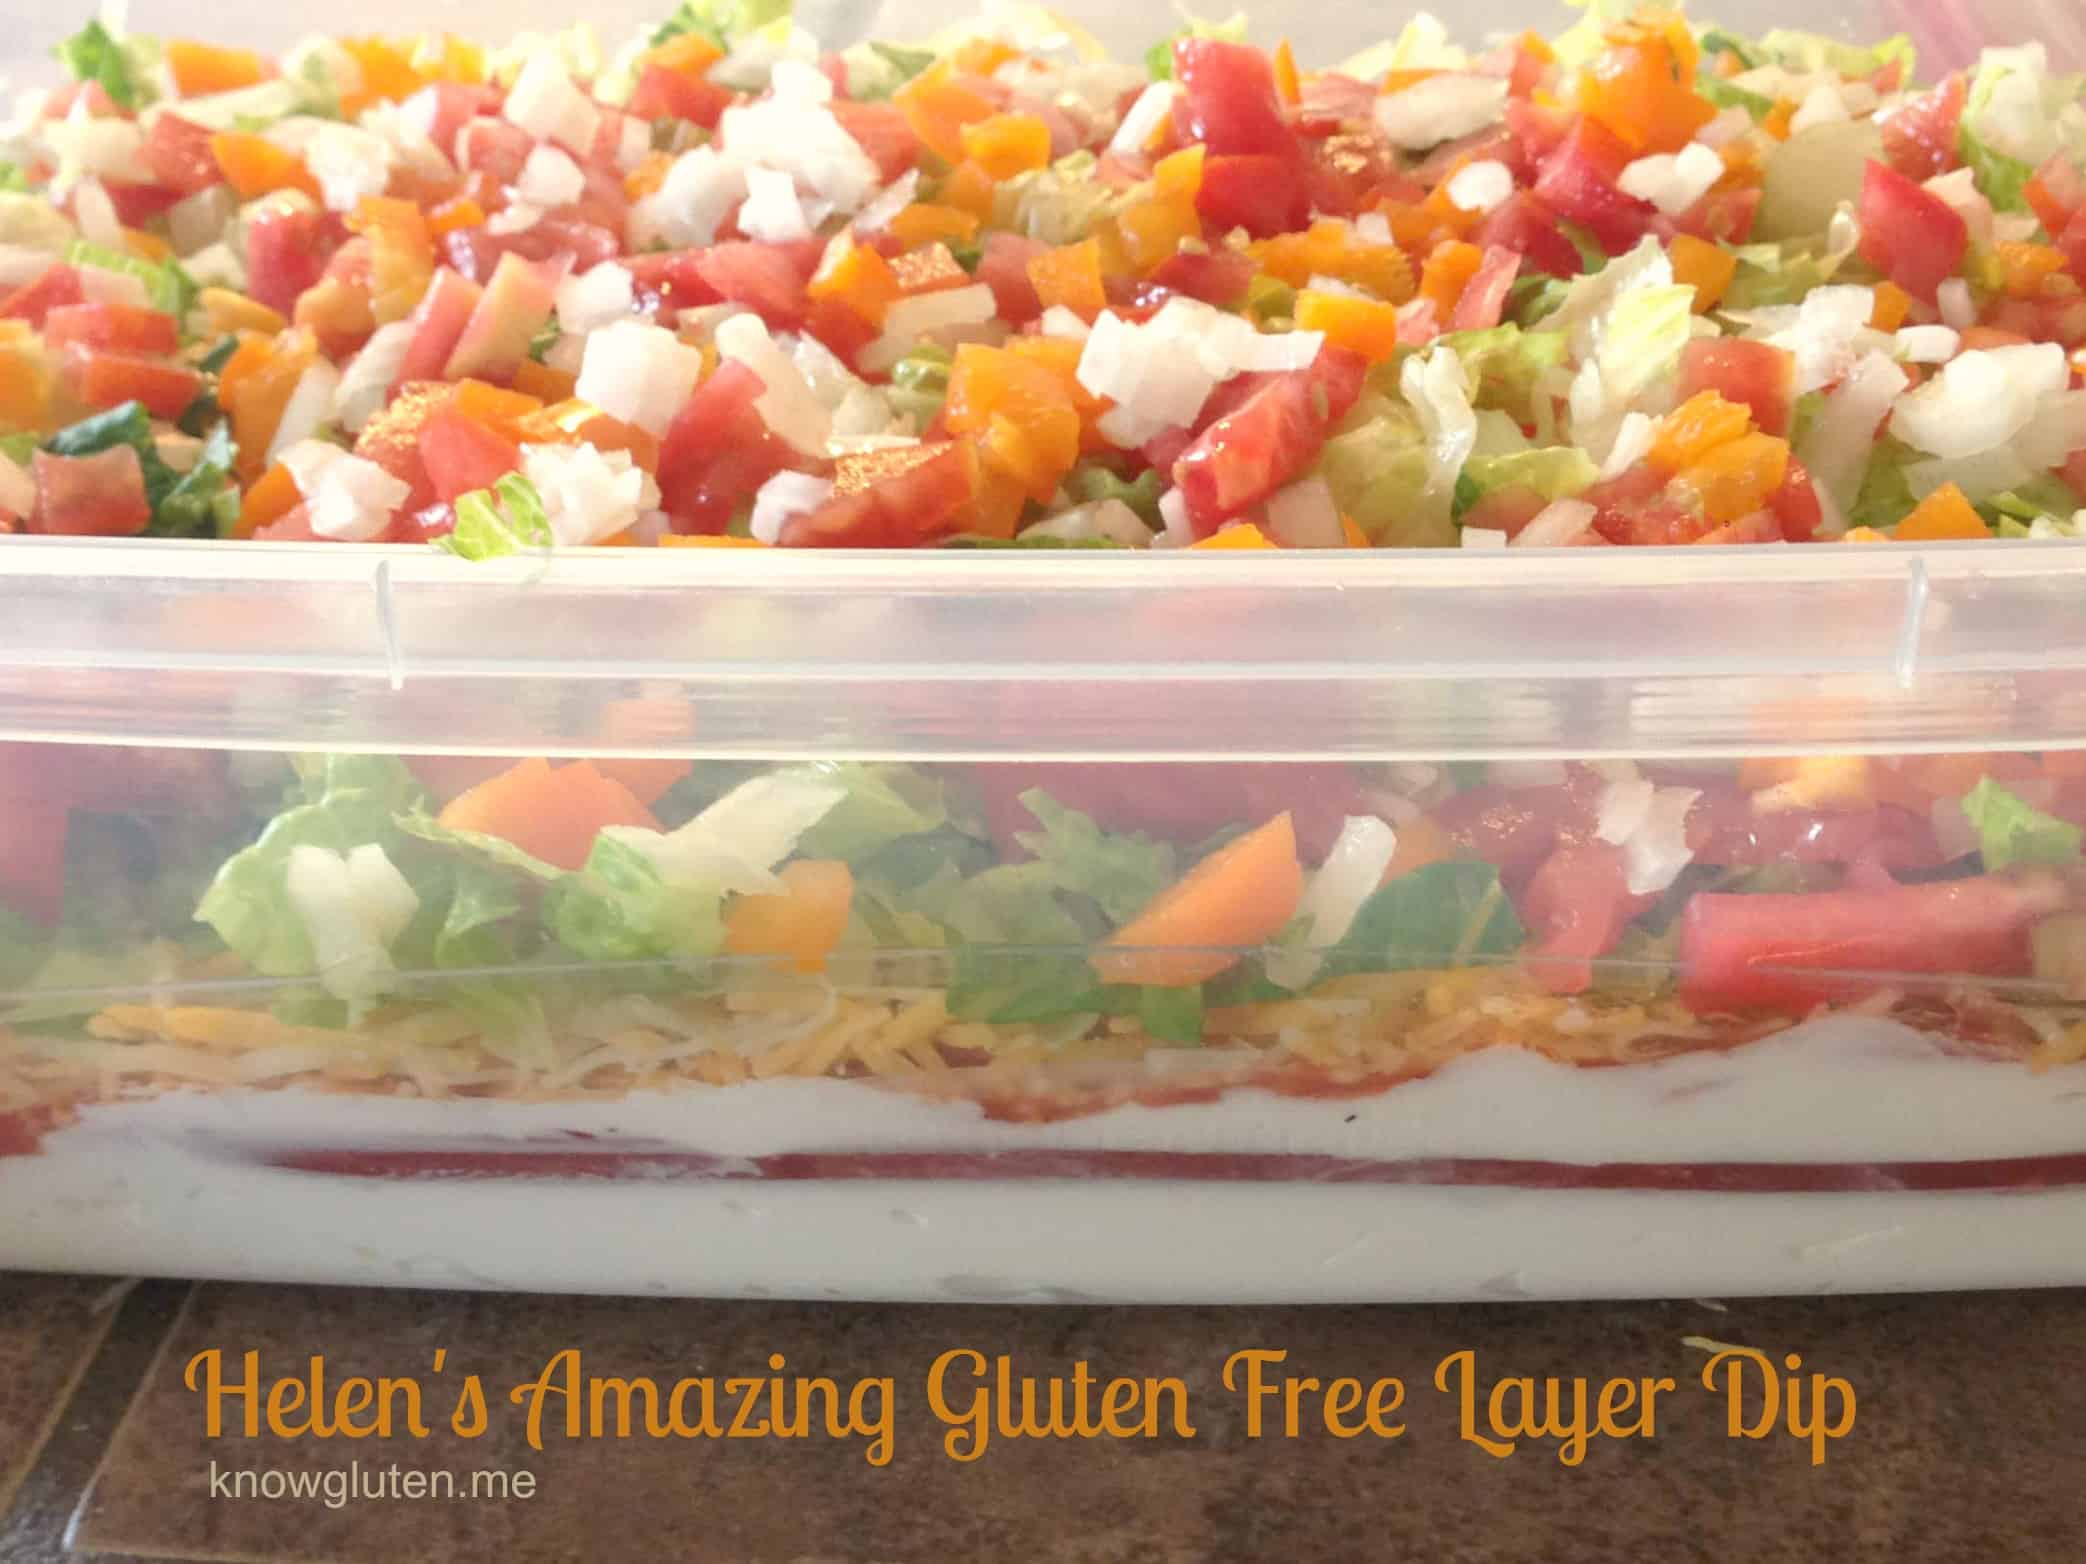 Helen's Amazing Gluten Free Layer Dip from knowgluten.me